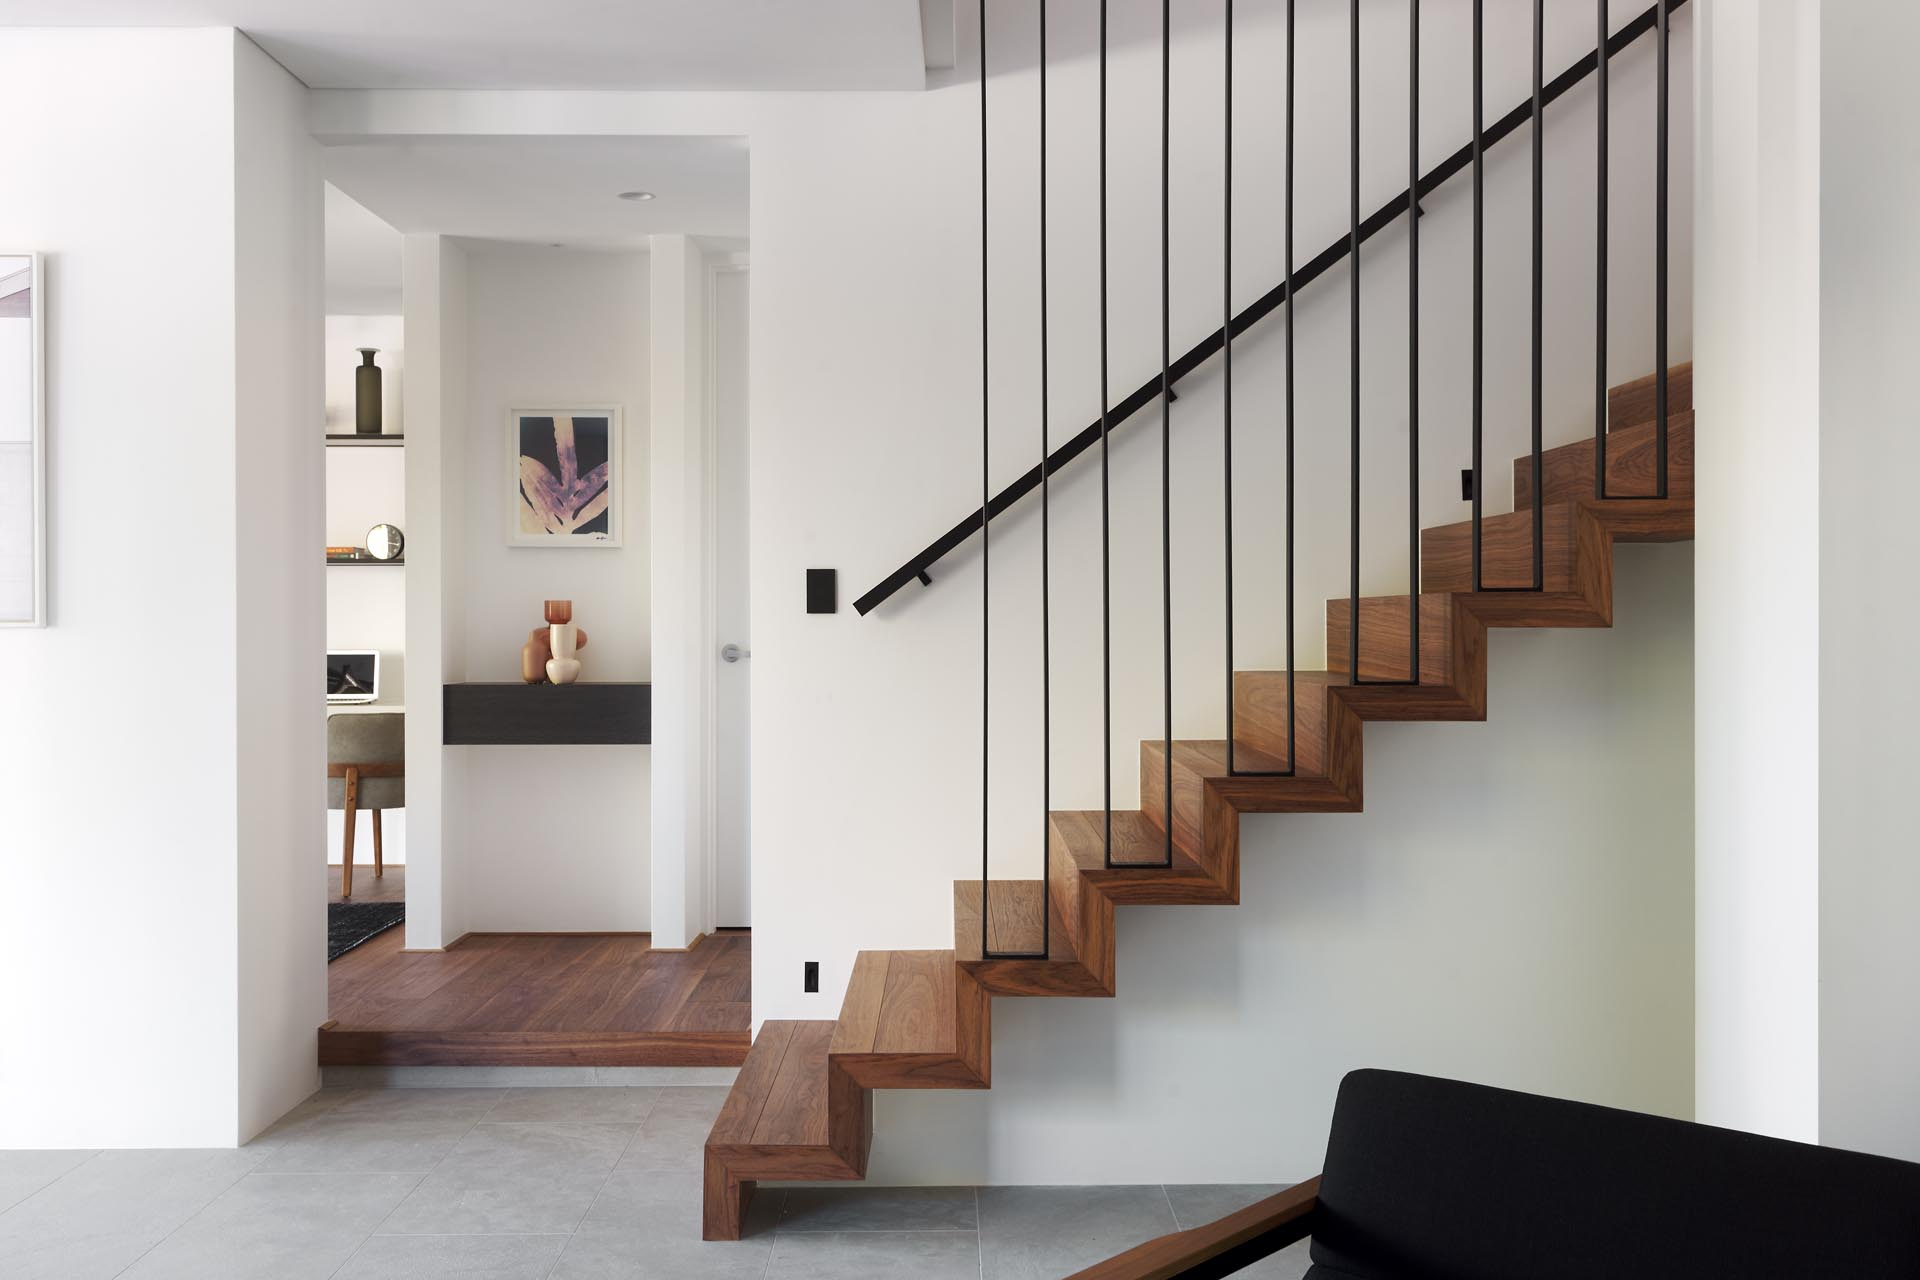 A modern house interior that includes wood stairs with a black metal railing that lead to the upper floor of the home.